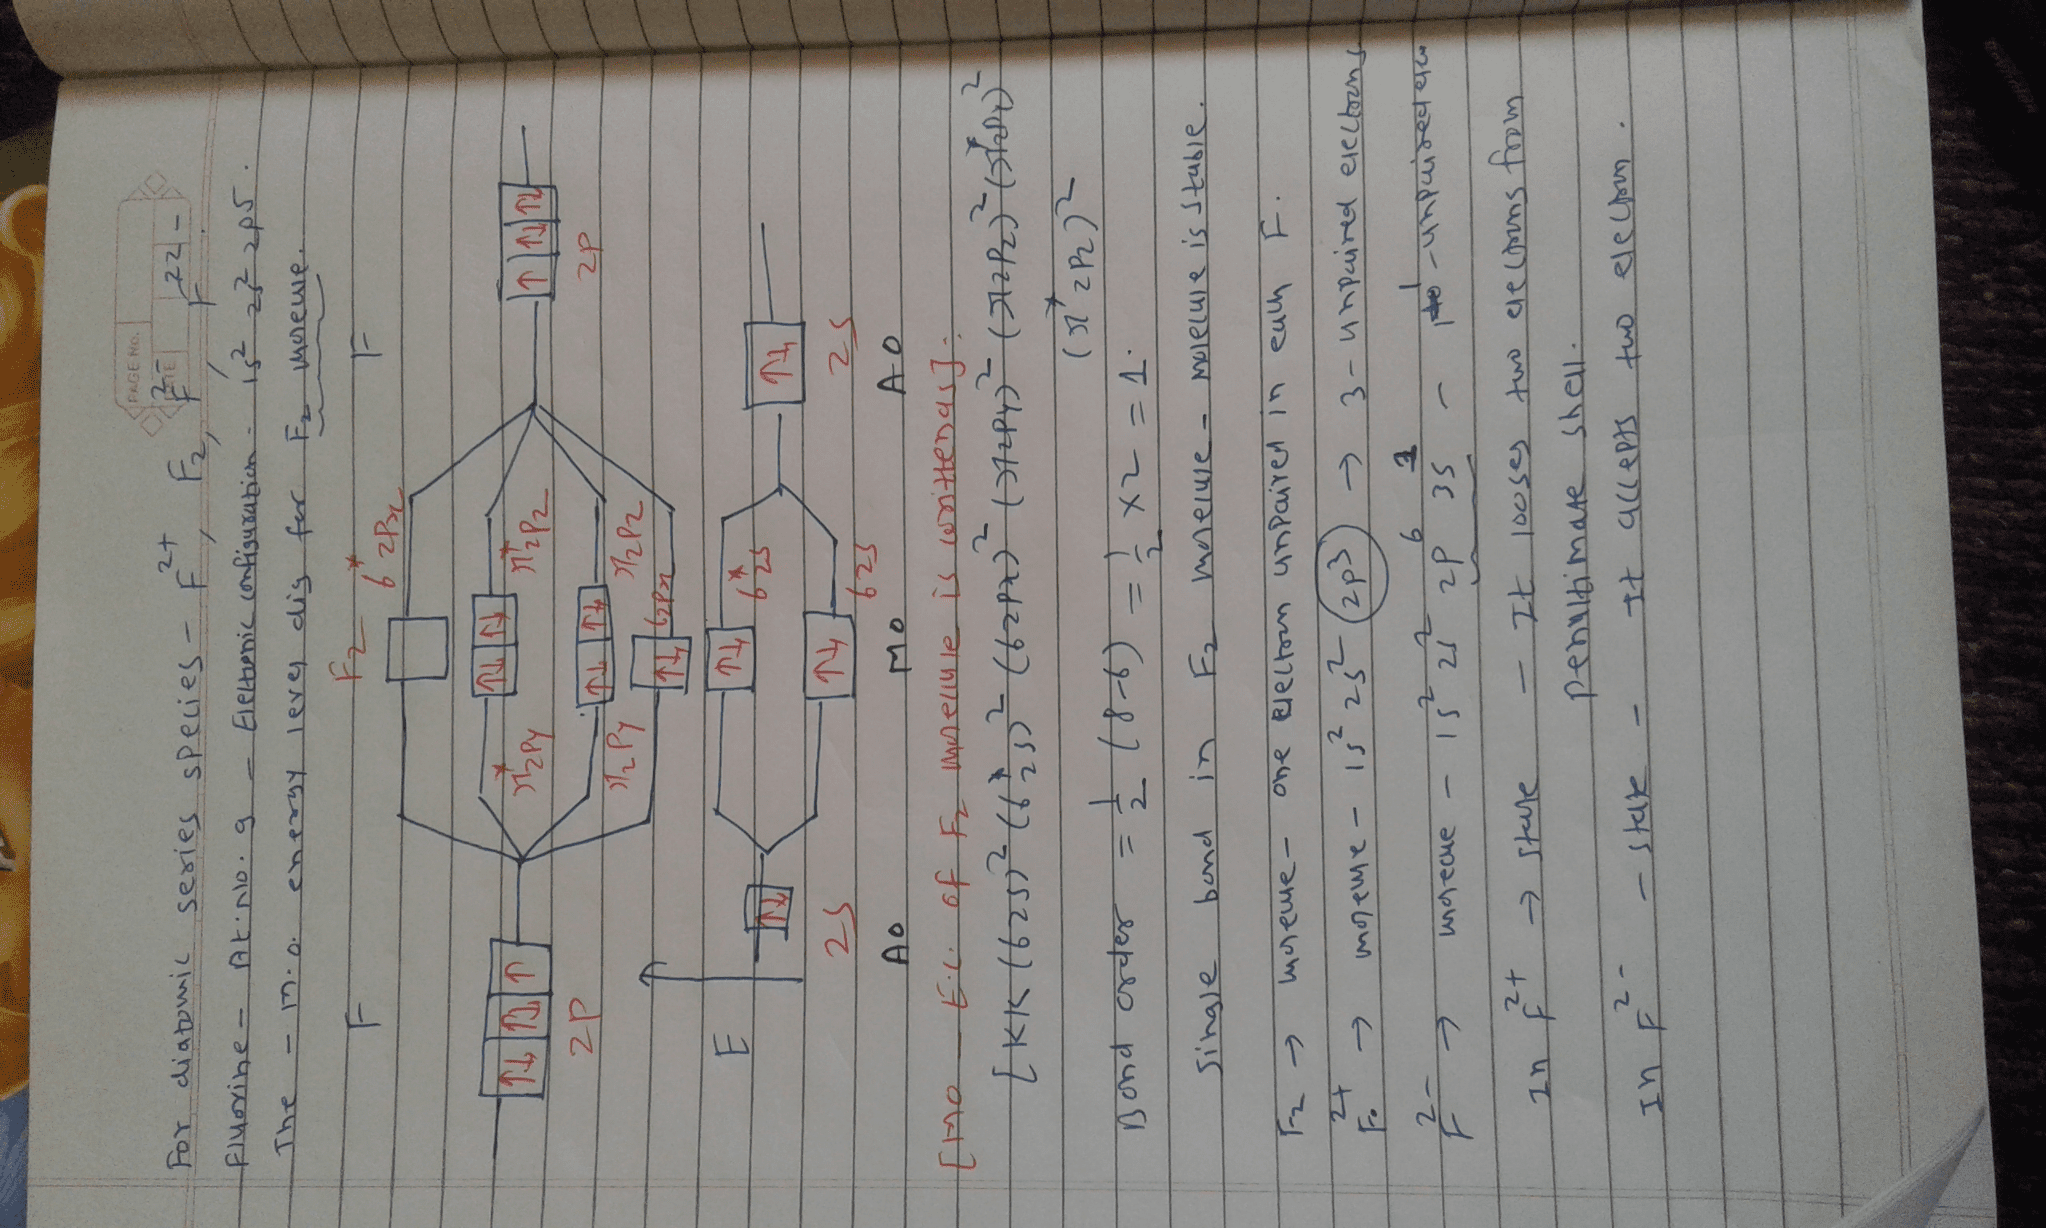 Oneclass For The Series Of Diatomic Species F2 F2 F2 F22 Determine From An Mo Energy Level D